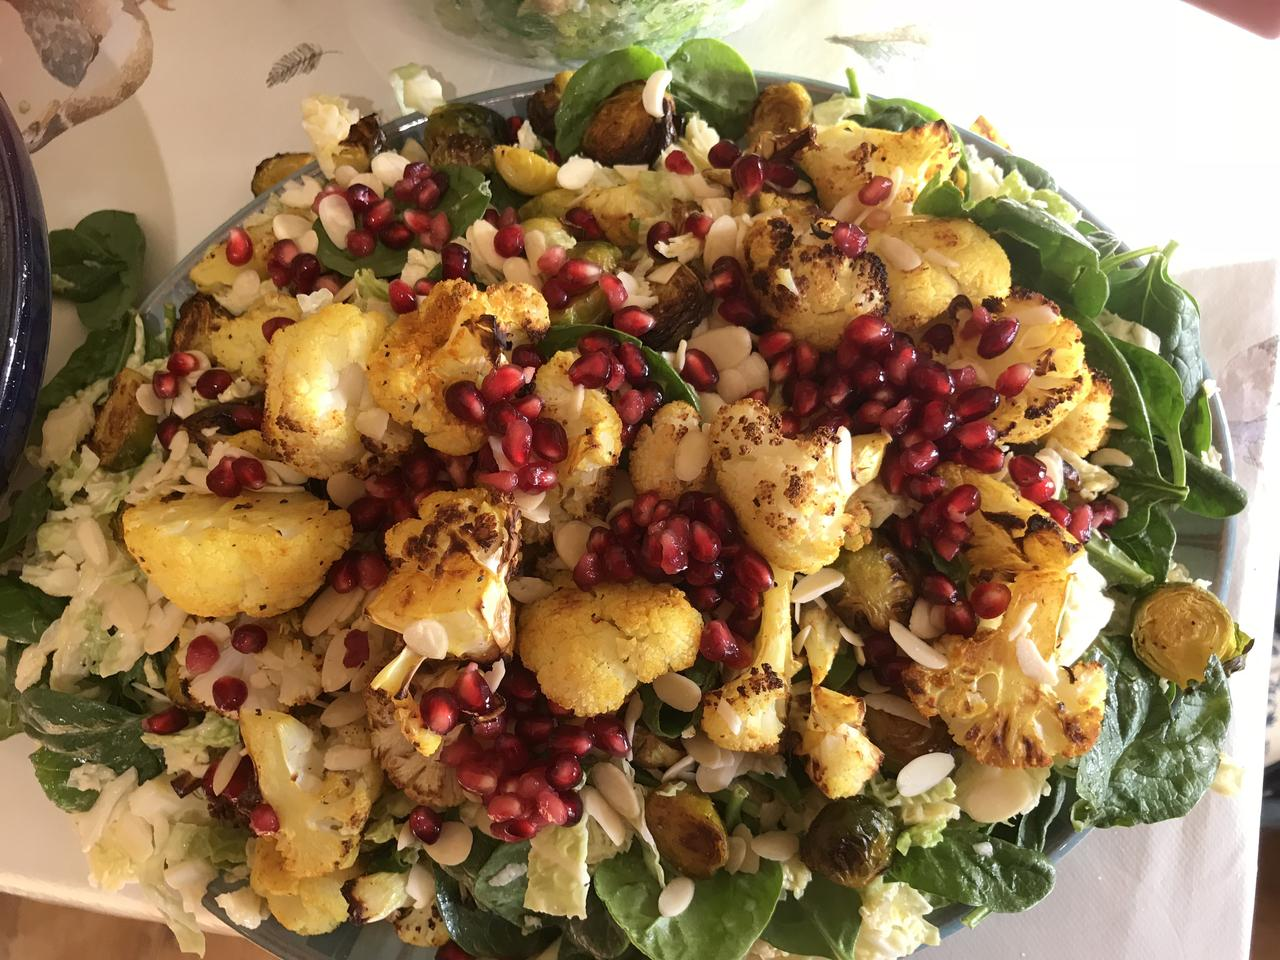 Roasted cauliflower dressed with pomegranate seeds.